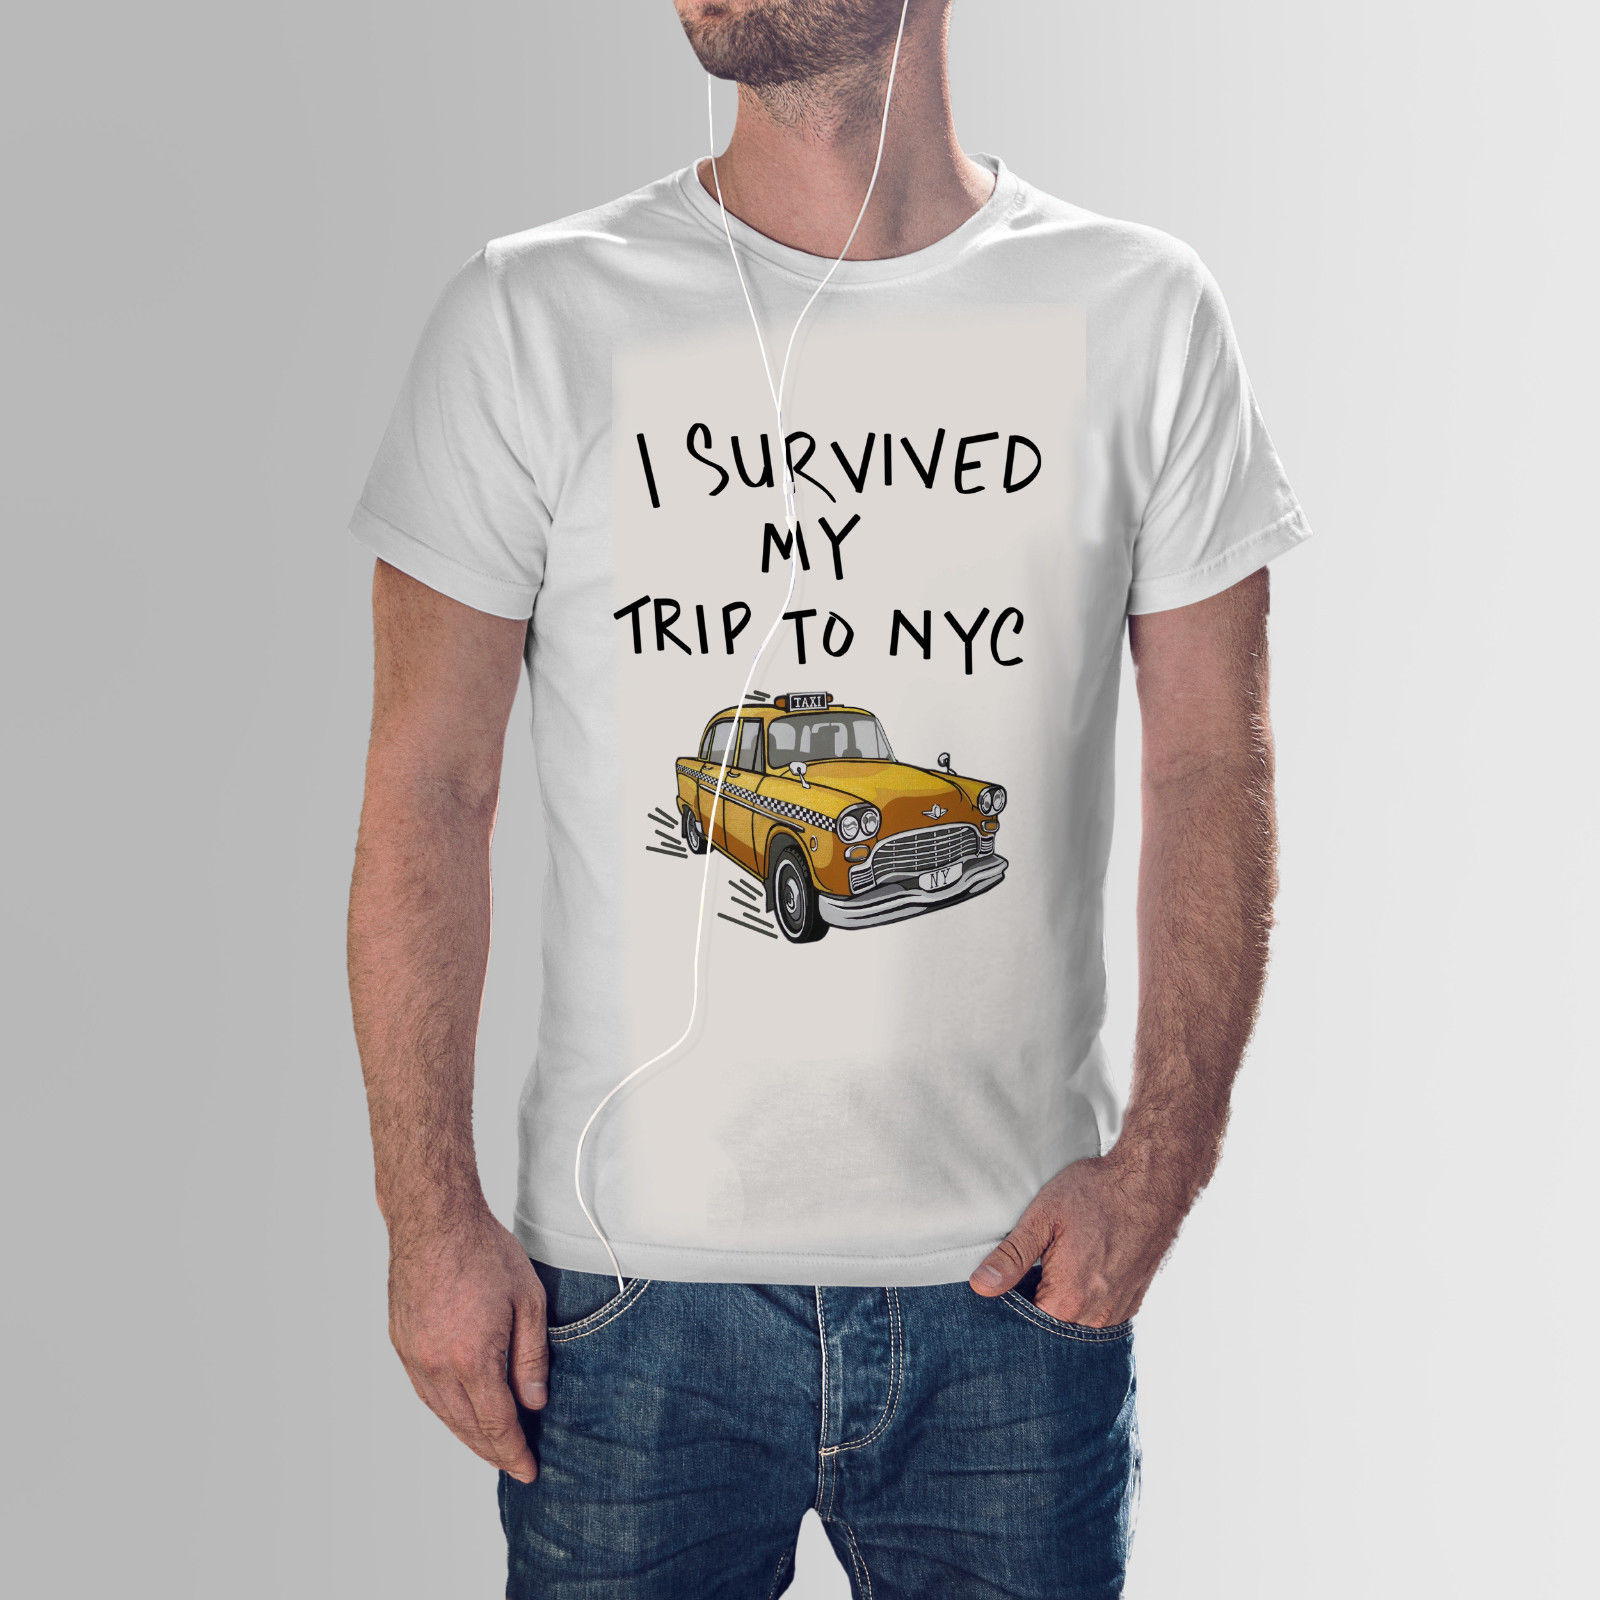 I Survived My Trip To Nyc T-Shirt, Inspired from movie Spiderman Homecoming